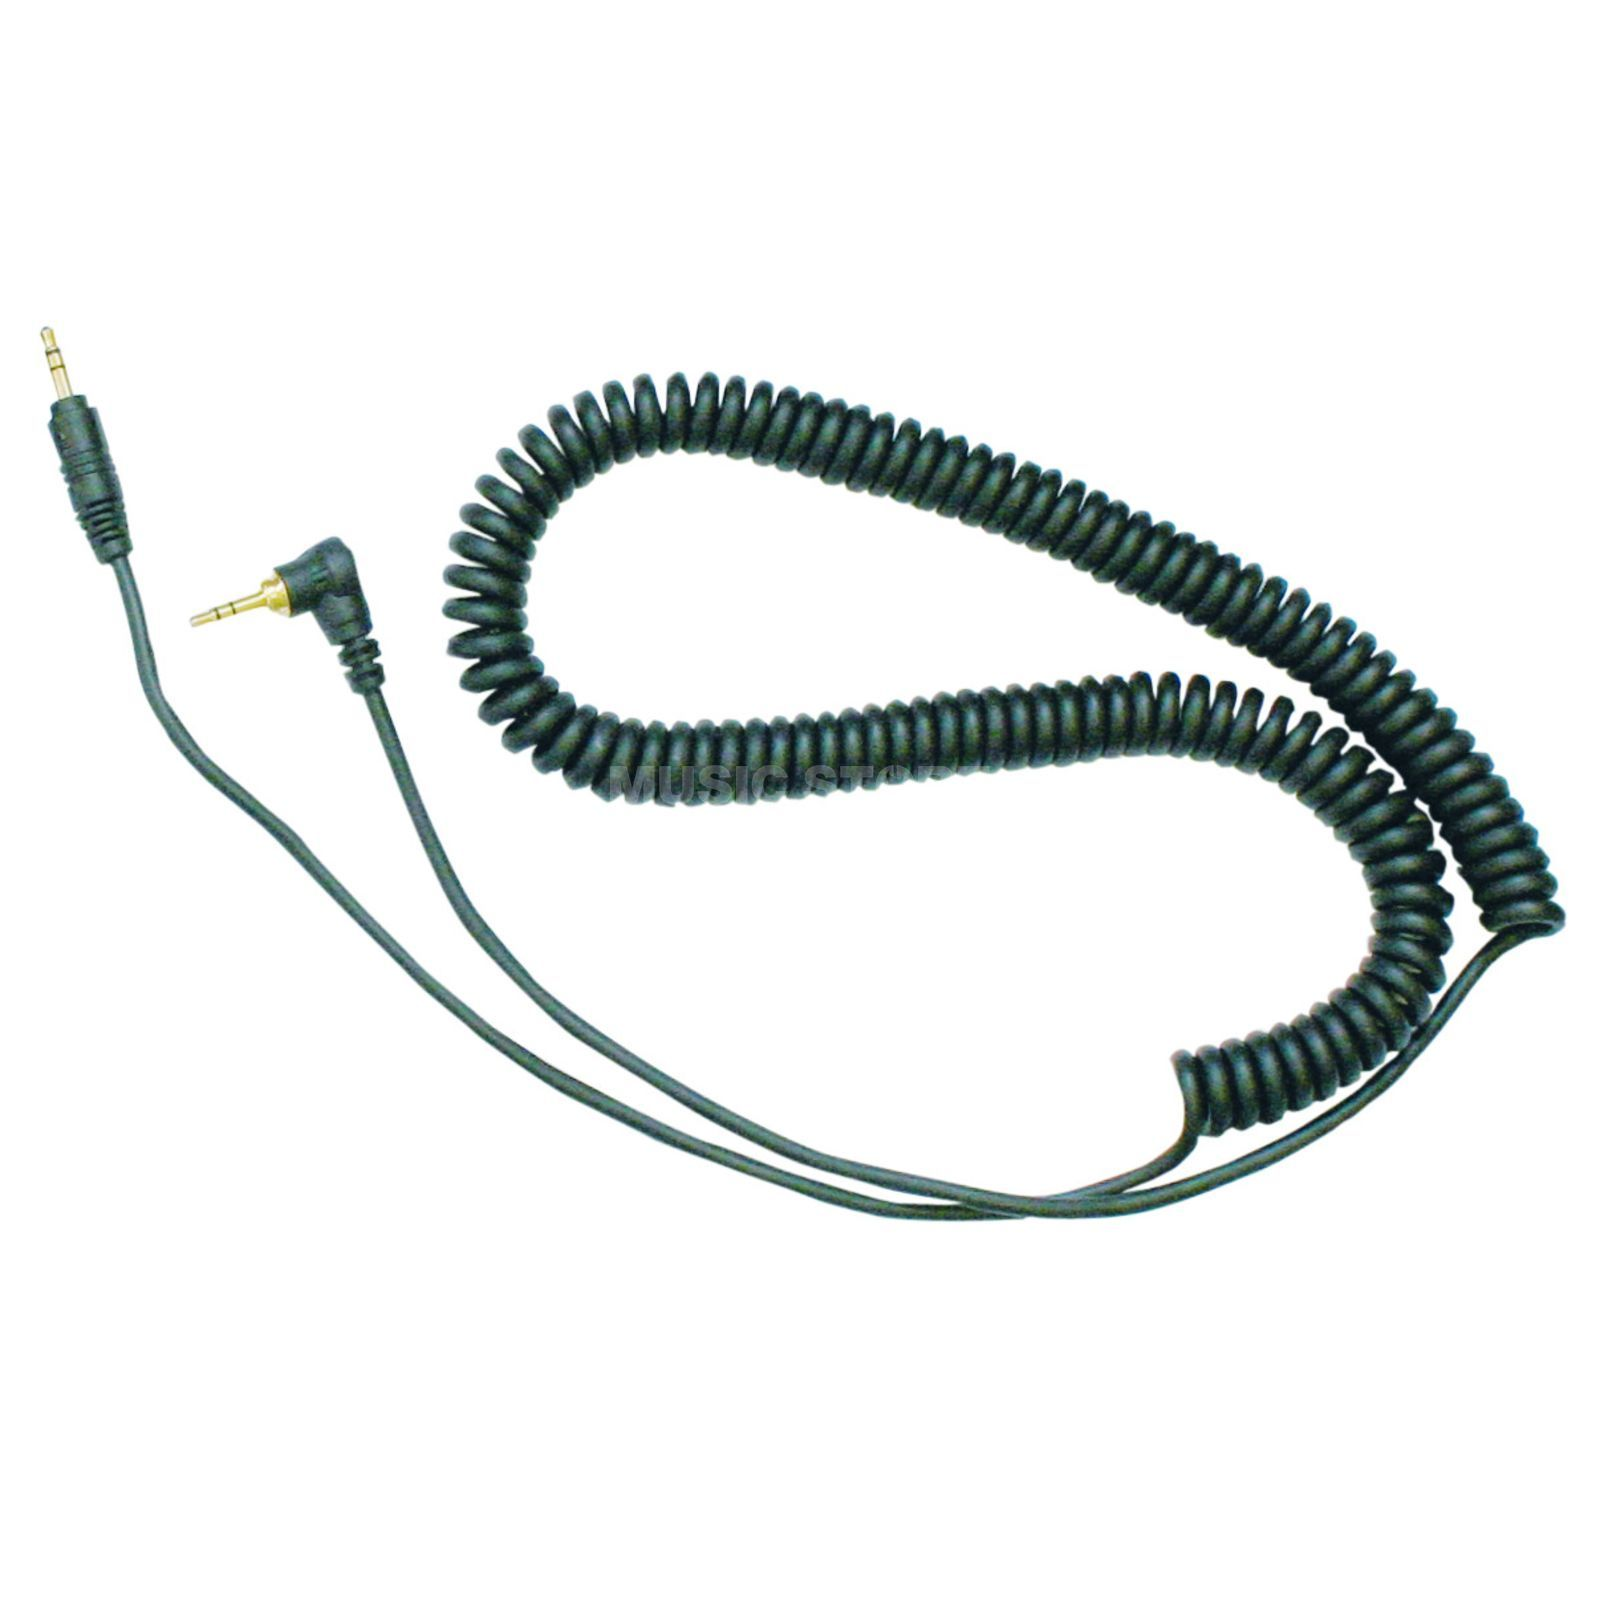 Reloop Replacement Cable for RHP-10/RH-3500 Spiral black Produktbillede